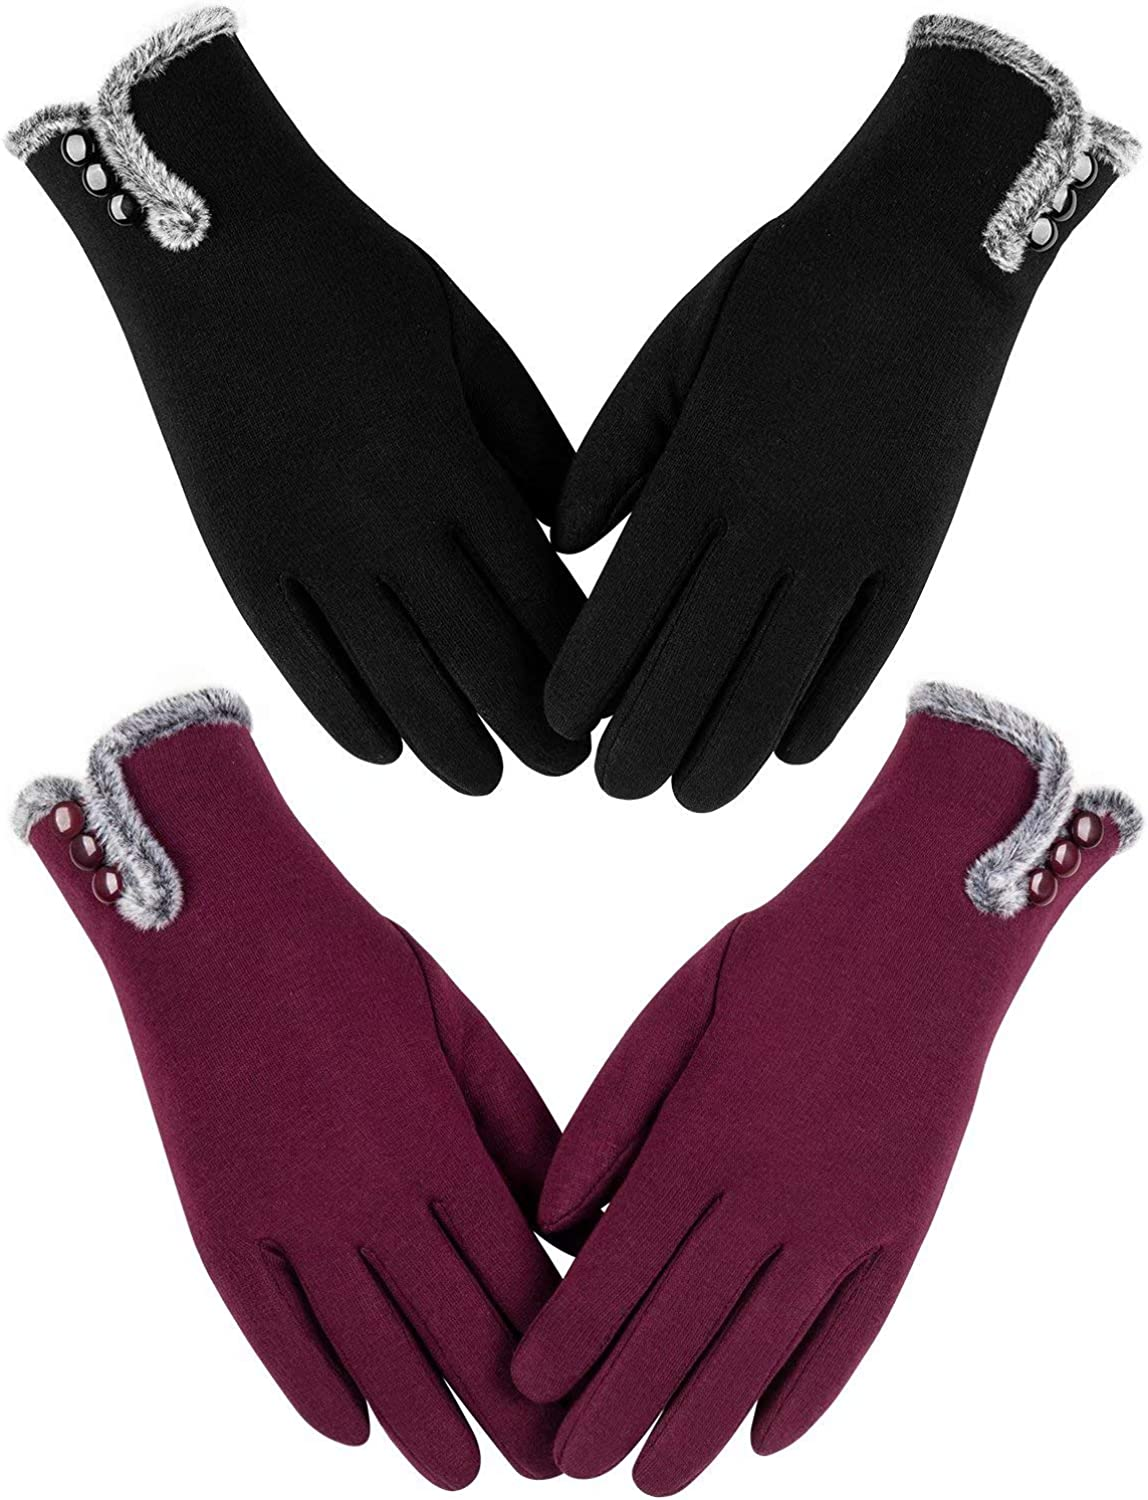 Womens Winter Warm Gloves With Sensitive Touch Screen Texting Fingers, Fleece Lined Windproof Gloves (Black Burgundy-M)